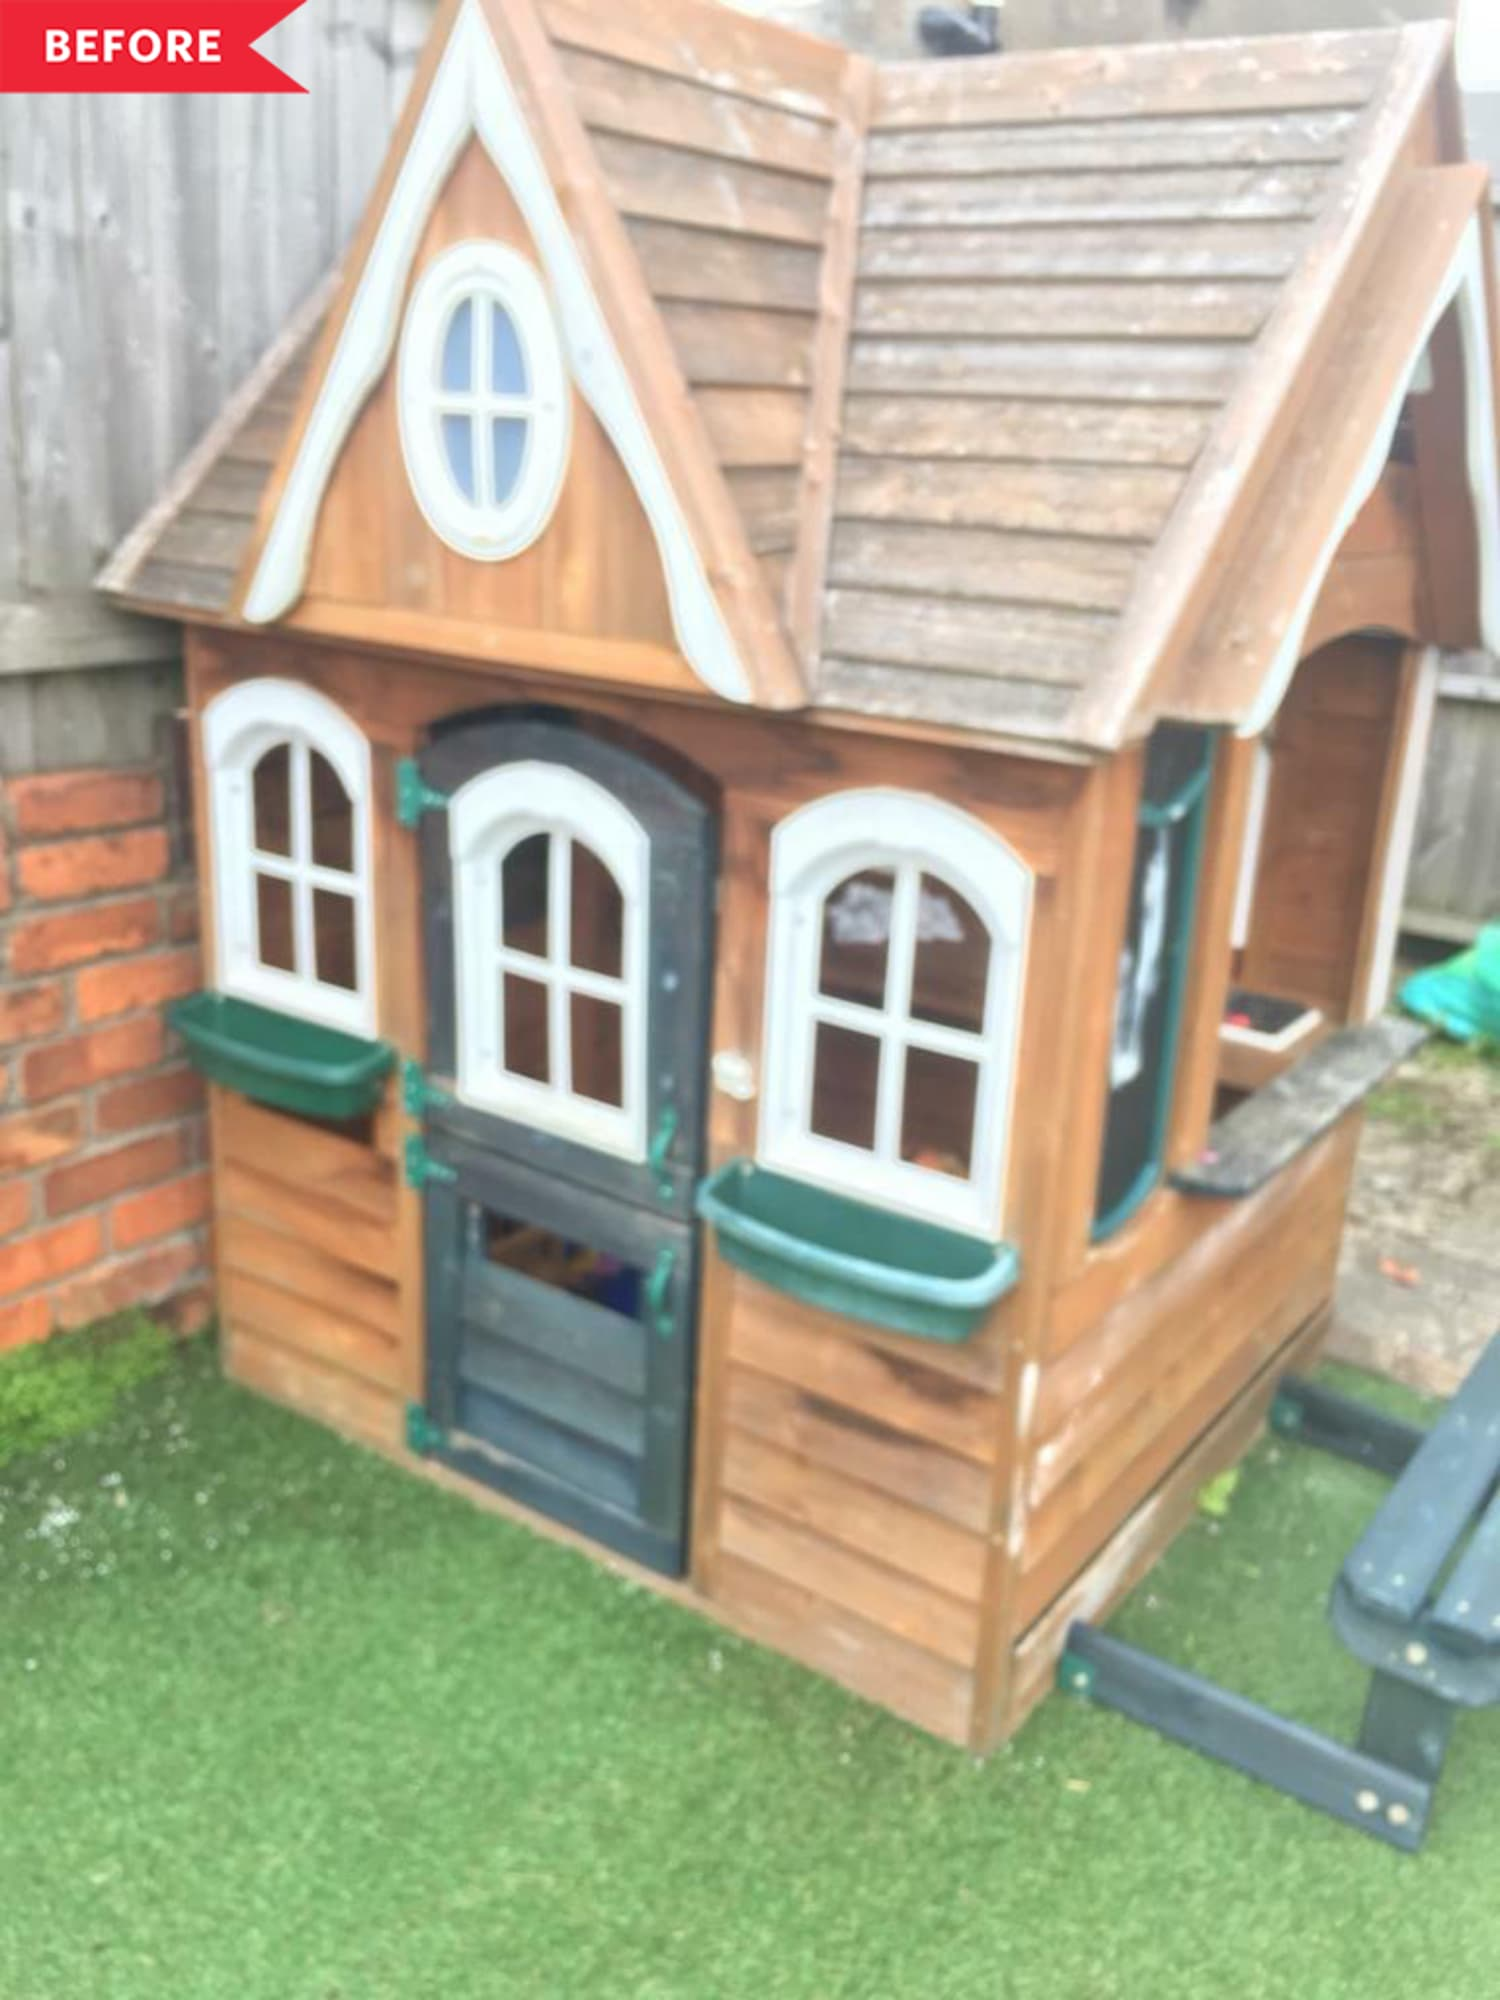 Before and After: The Most Magical Little Playhouse You've Ever Seen